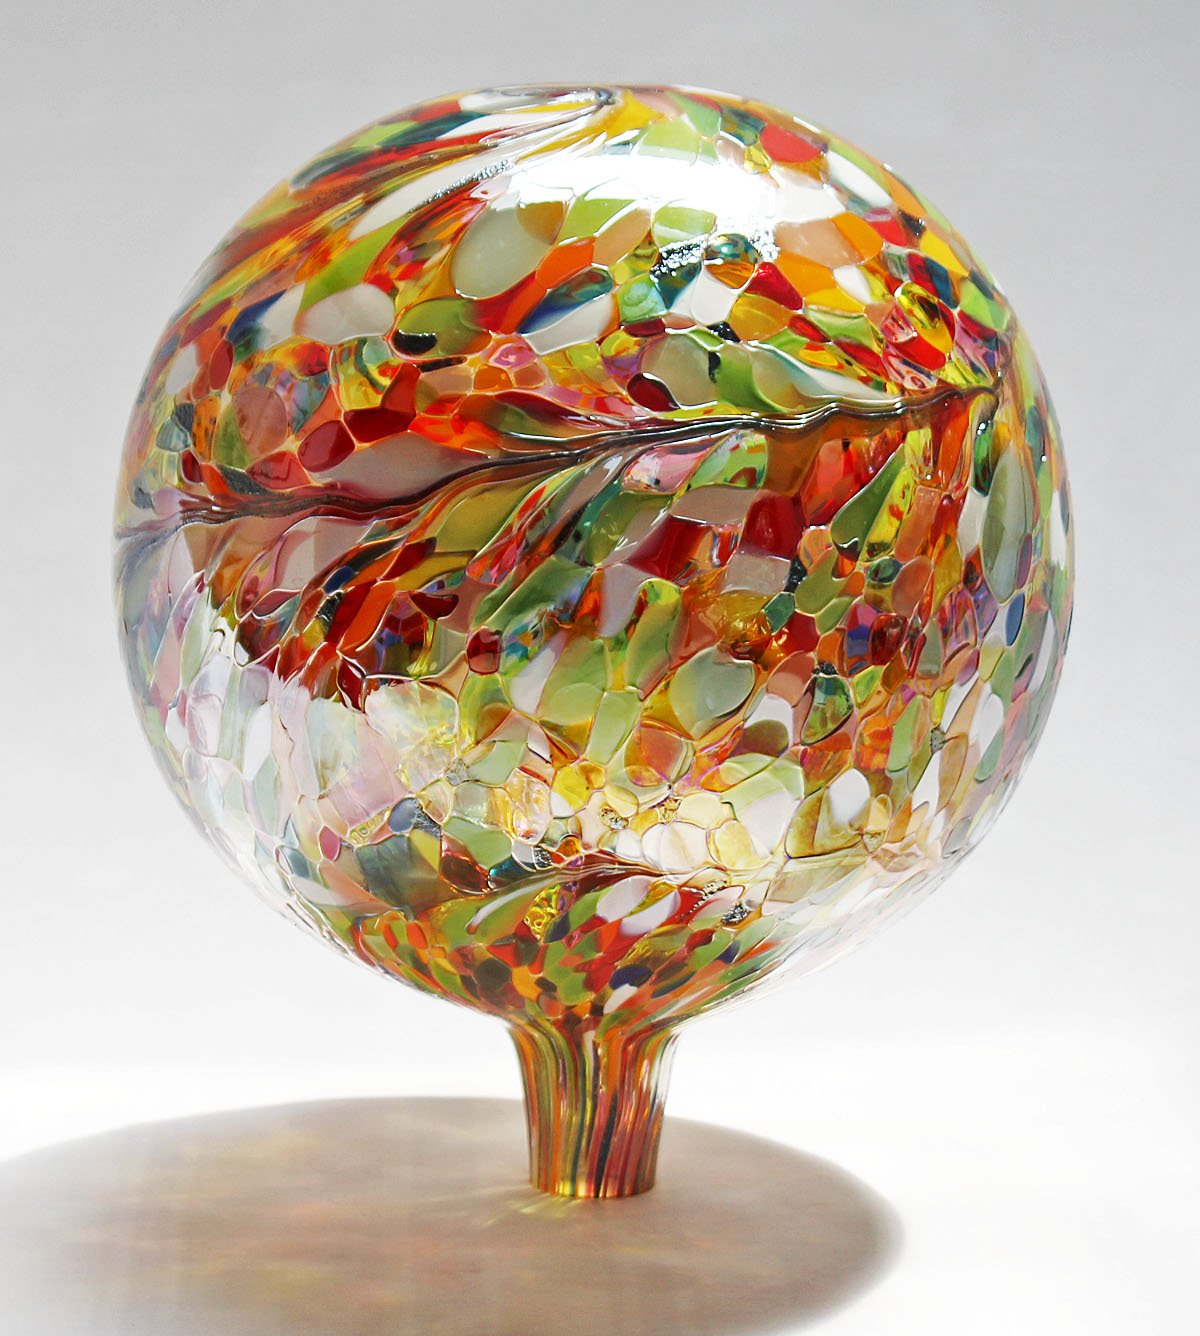 Glass Gazing Ball''Multicolor'' 12 Inch by Iron Art Glass Designs